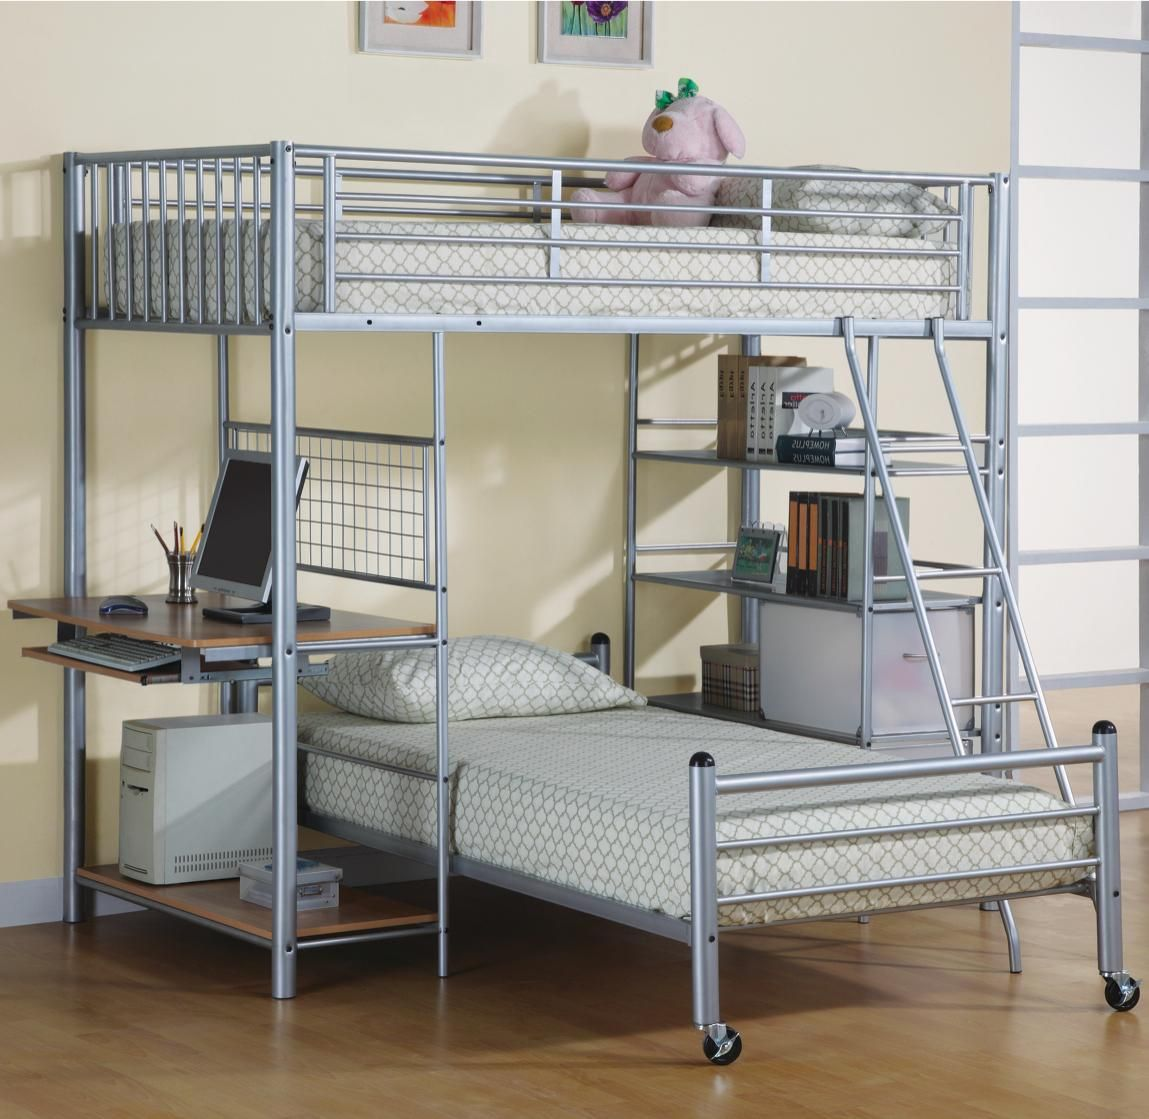 c748d91763bf4 Bunks Twin Over Twin Bunk Bed with Desk by Coaster